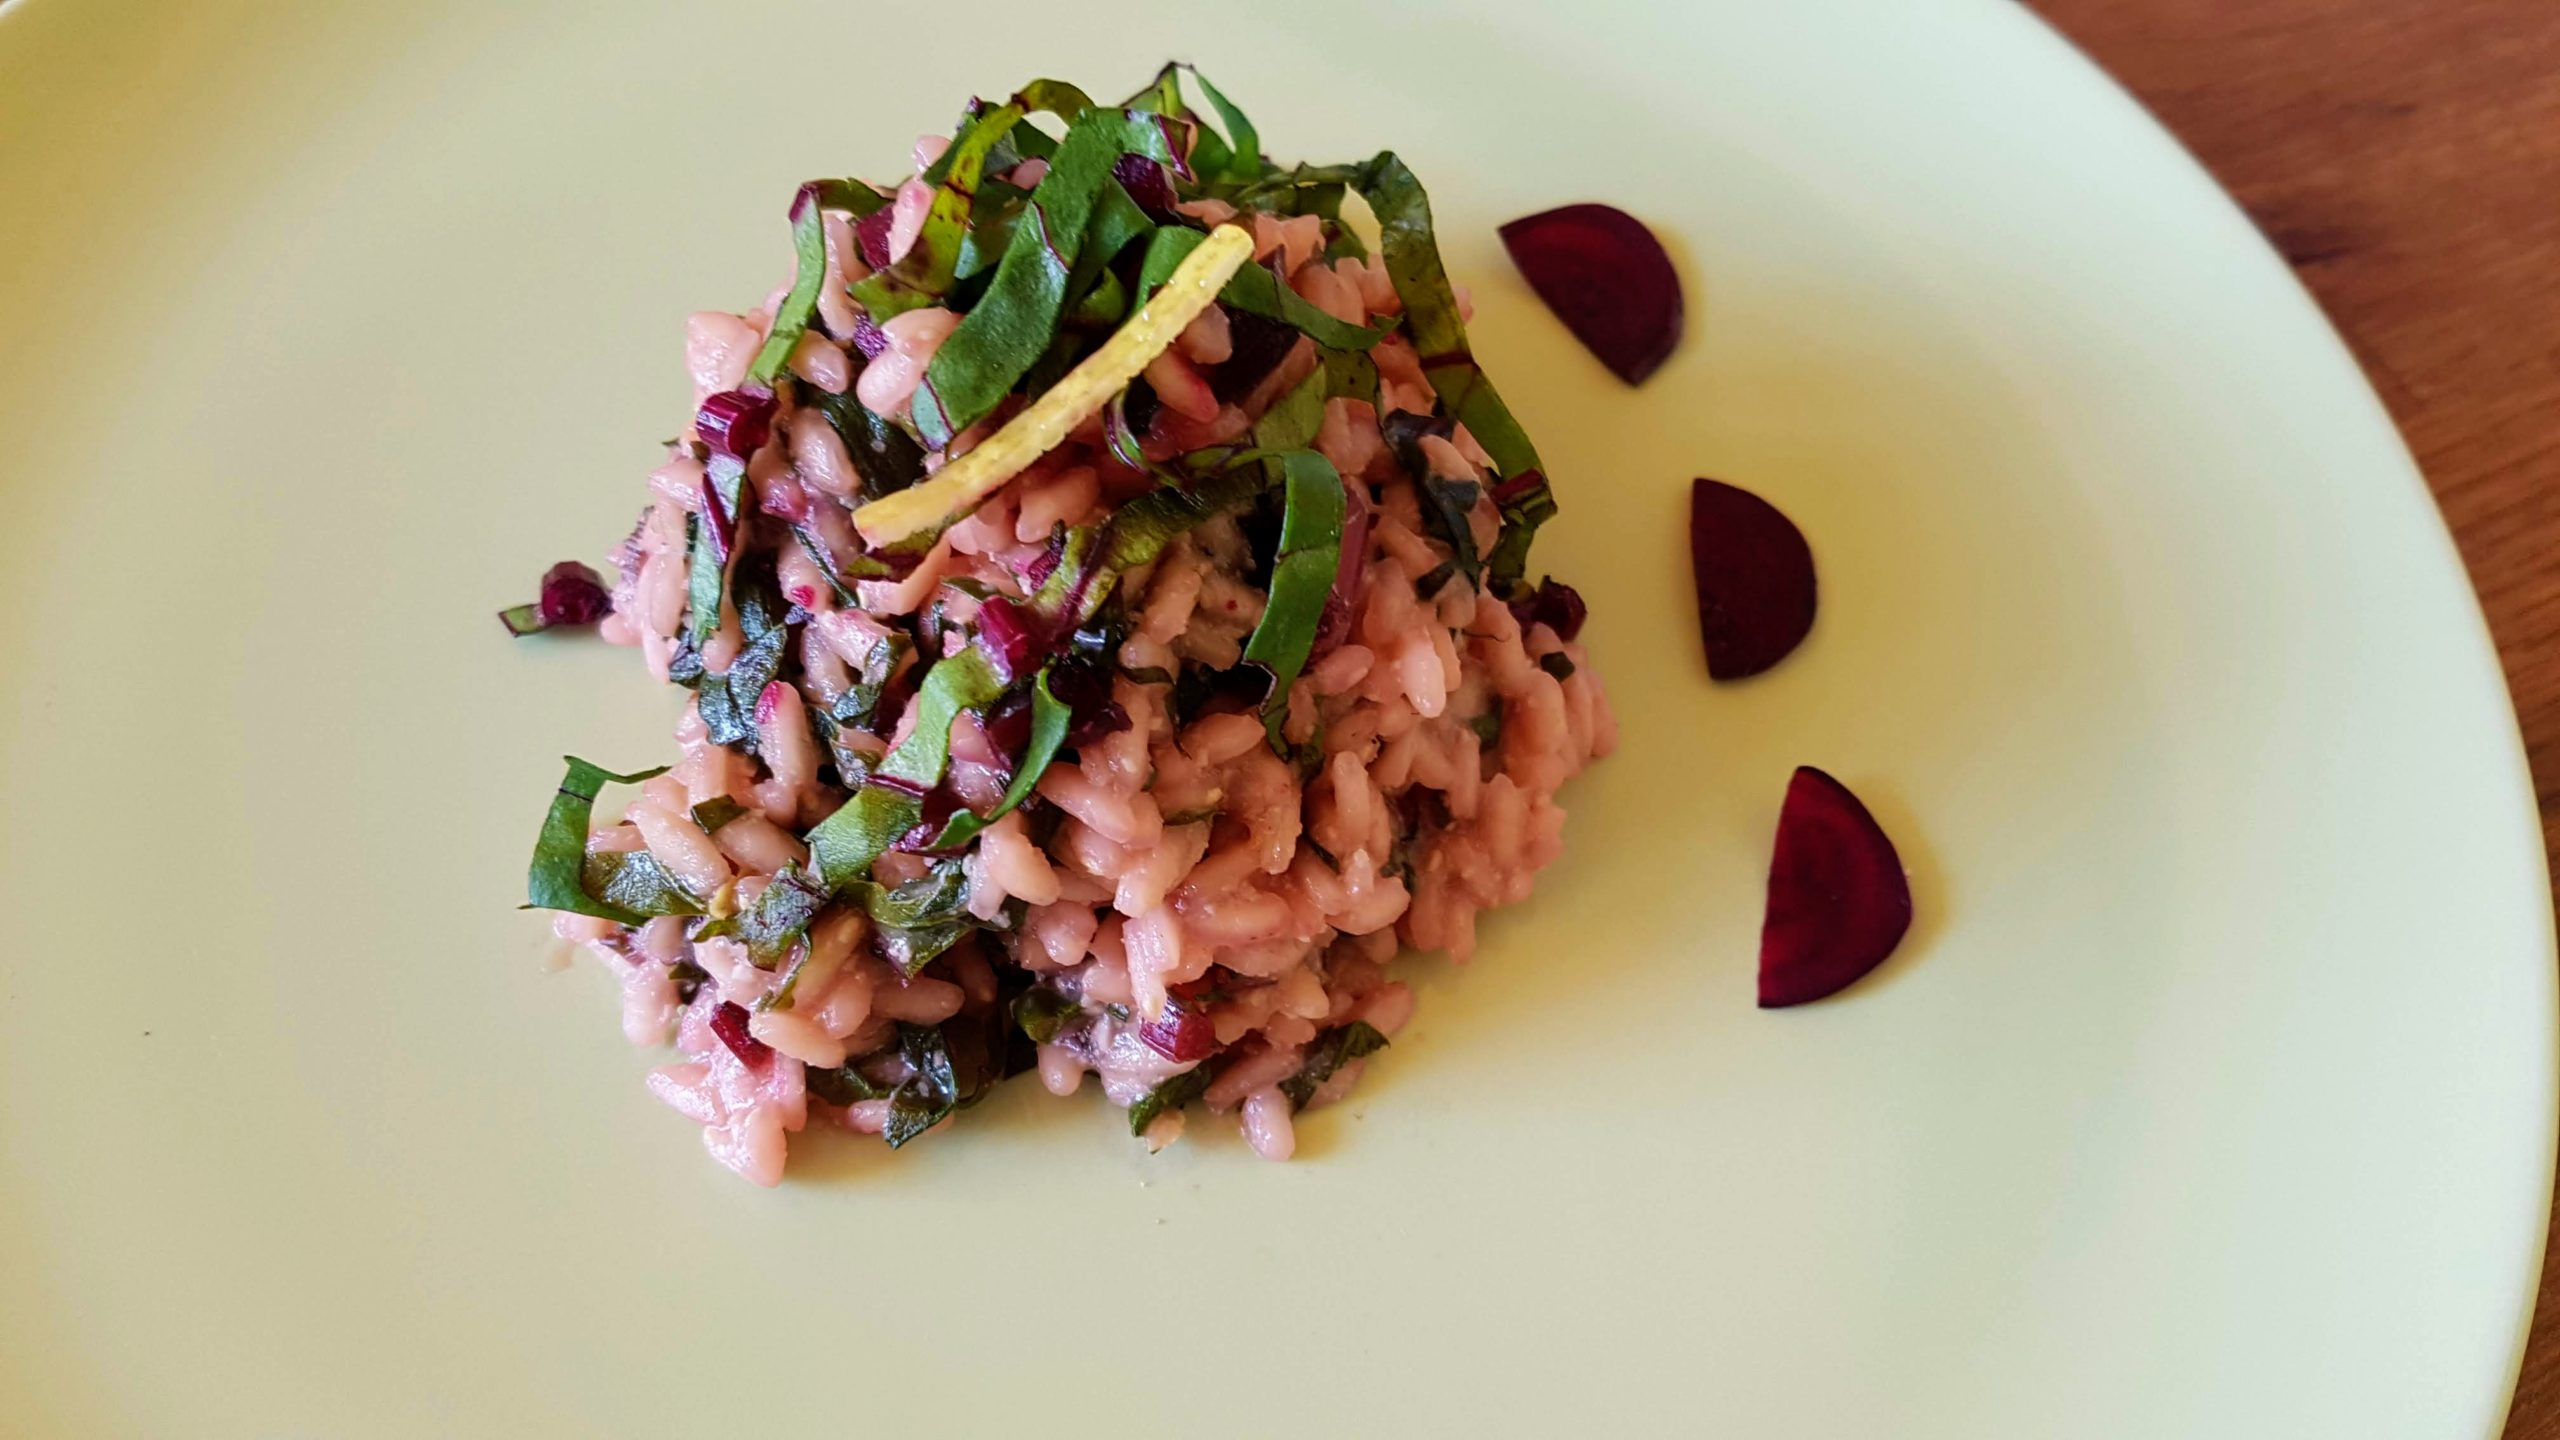 Beetroot leaves risotto, flavored with lemon